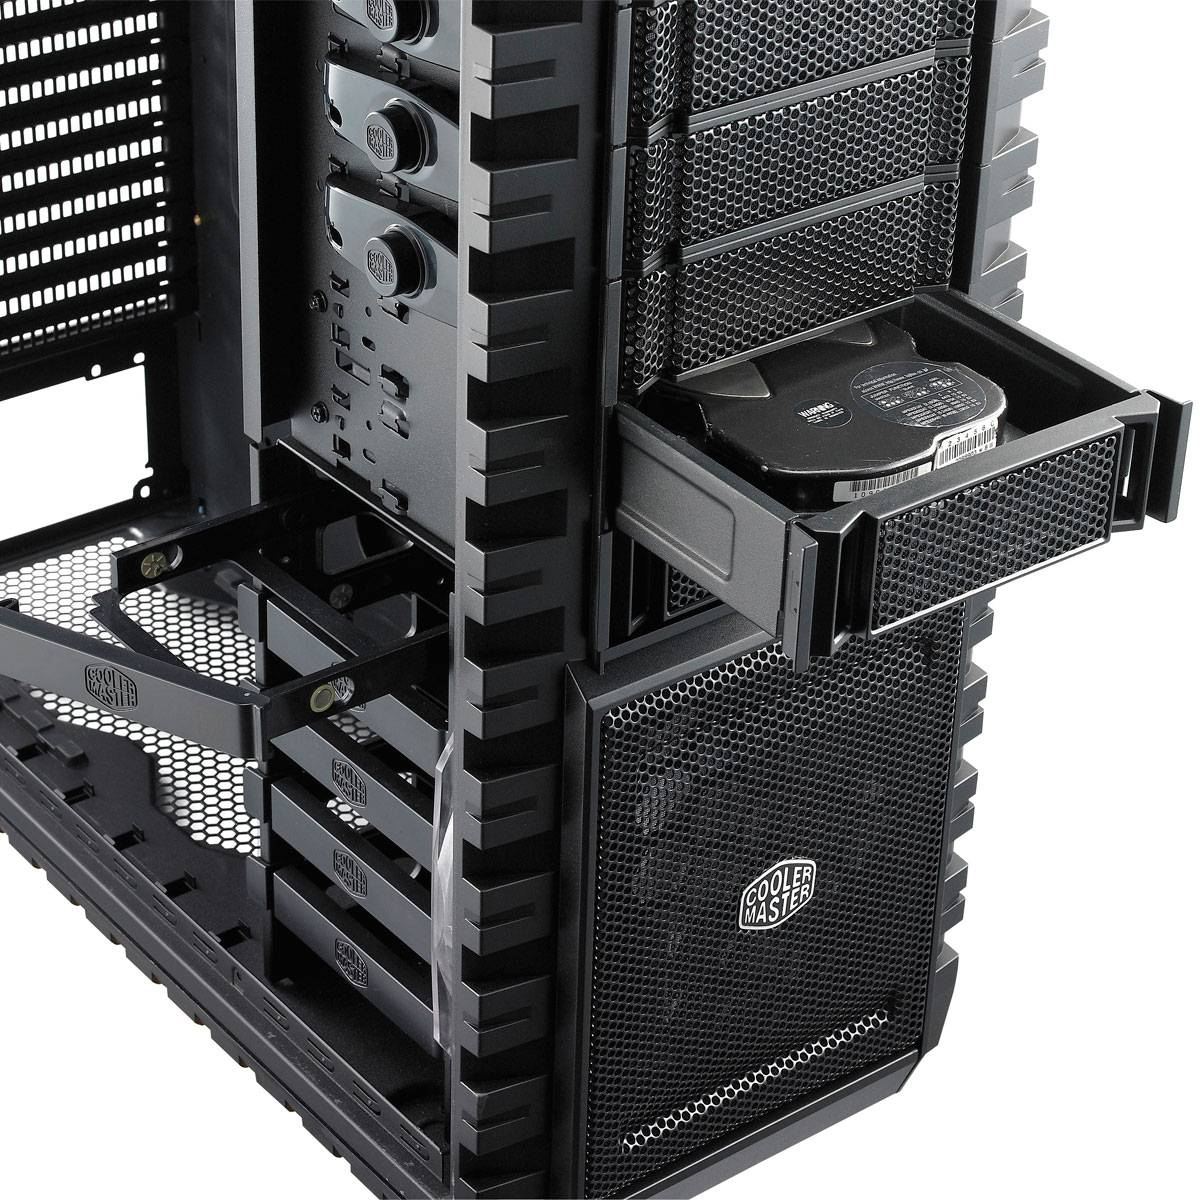 boitier pc grande tour cooler master haf x rc 942 kkn1 sans alim. Black Bedroom Furniture Sets. Home Design Ideas